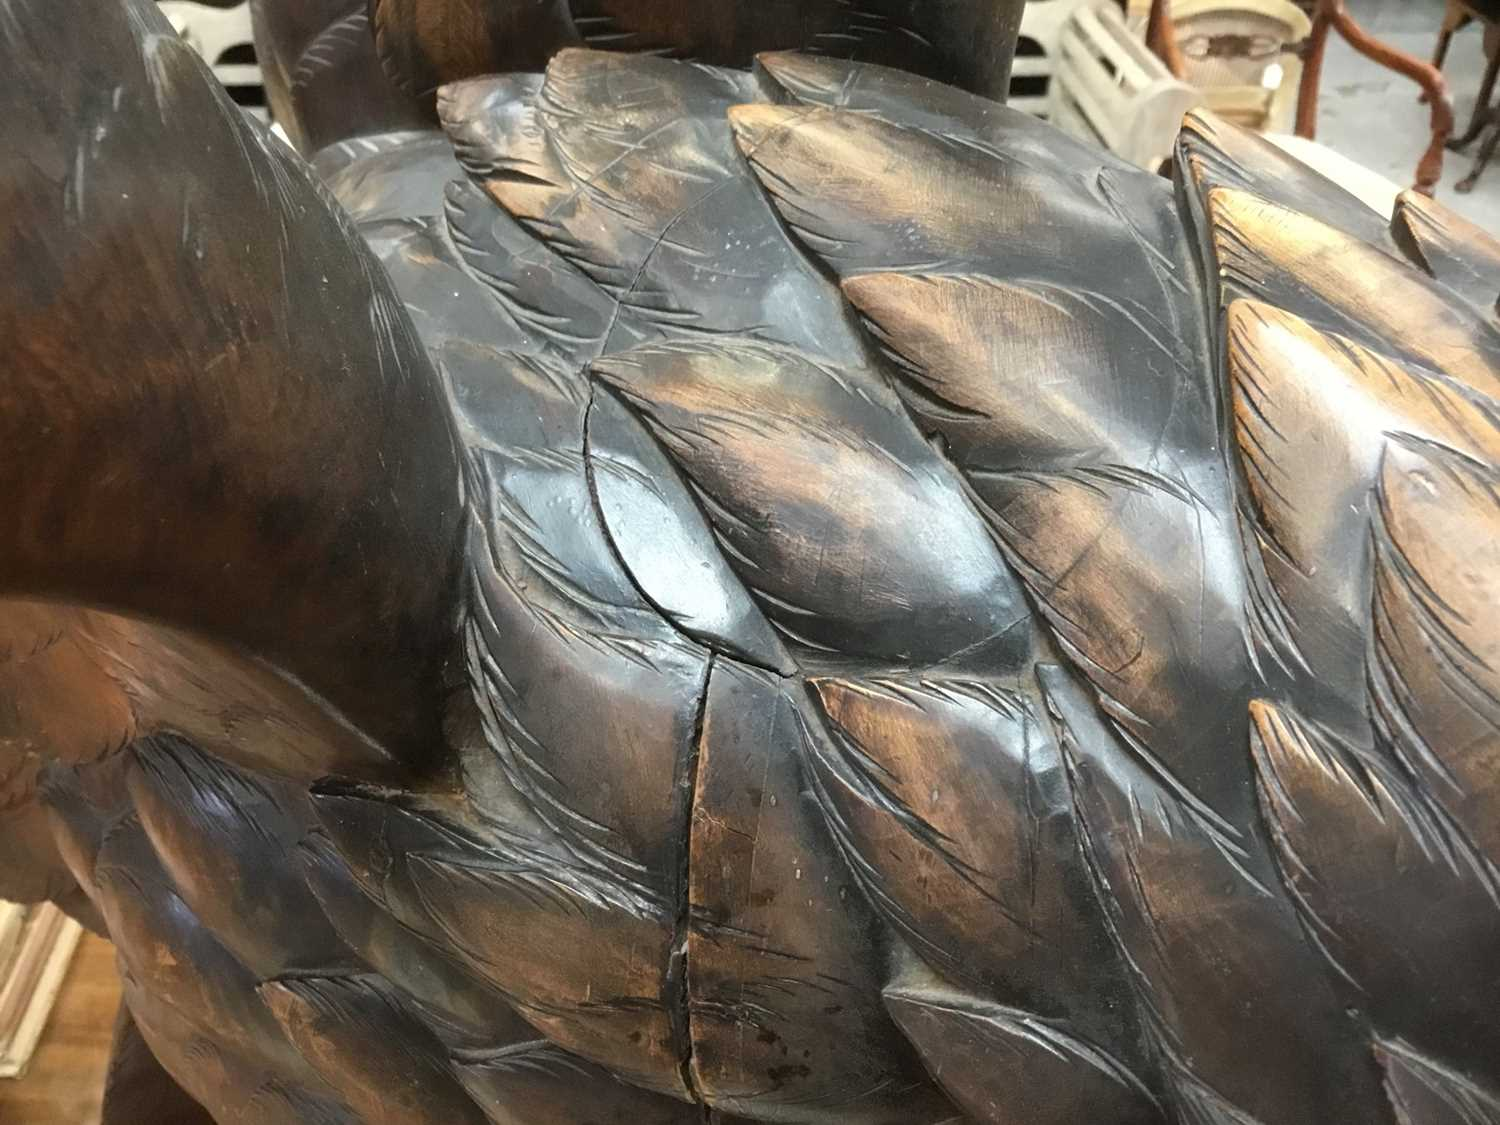 Exceptional late 19th / early 20th century Black Forest carved lindenwood figure of an eagle - Image 16 of 28